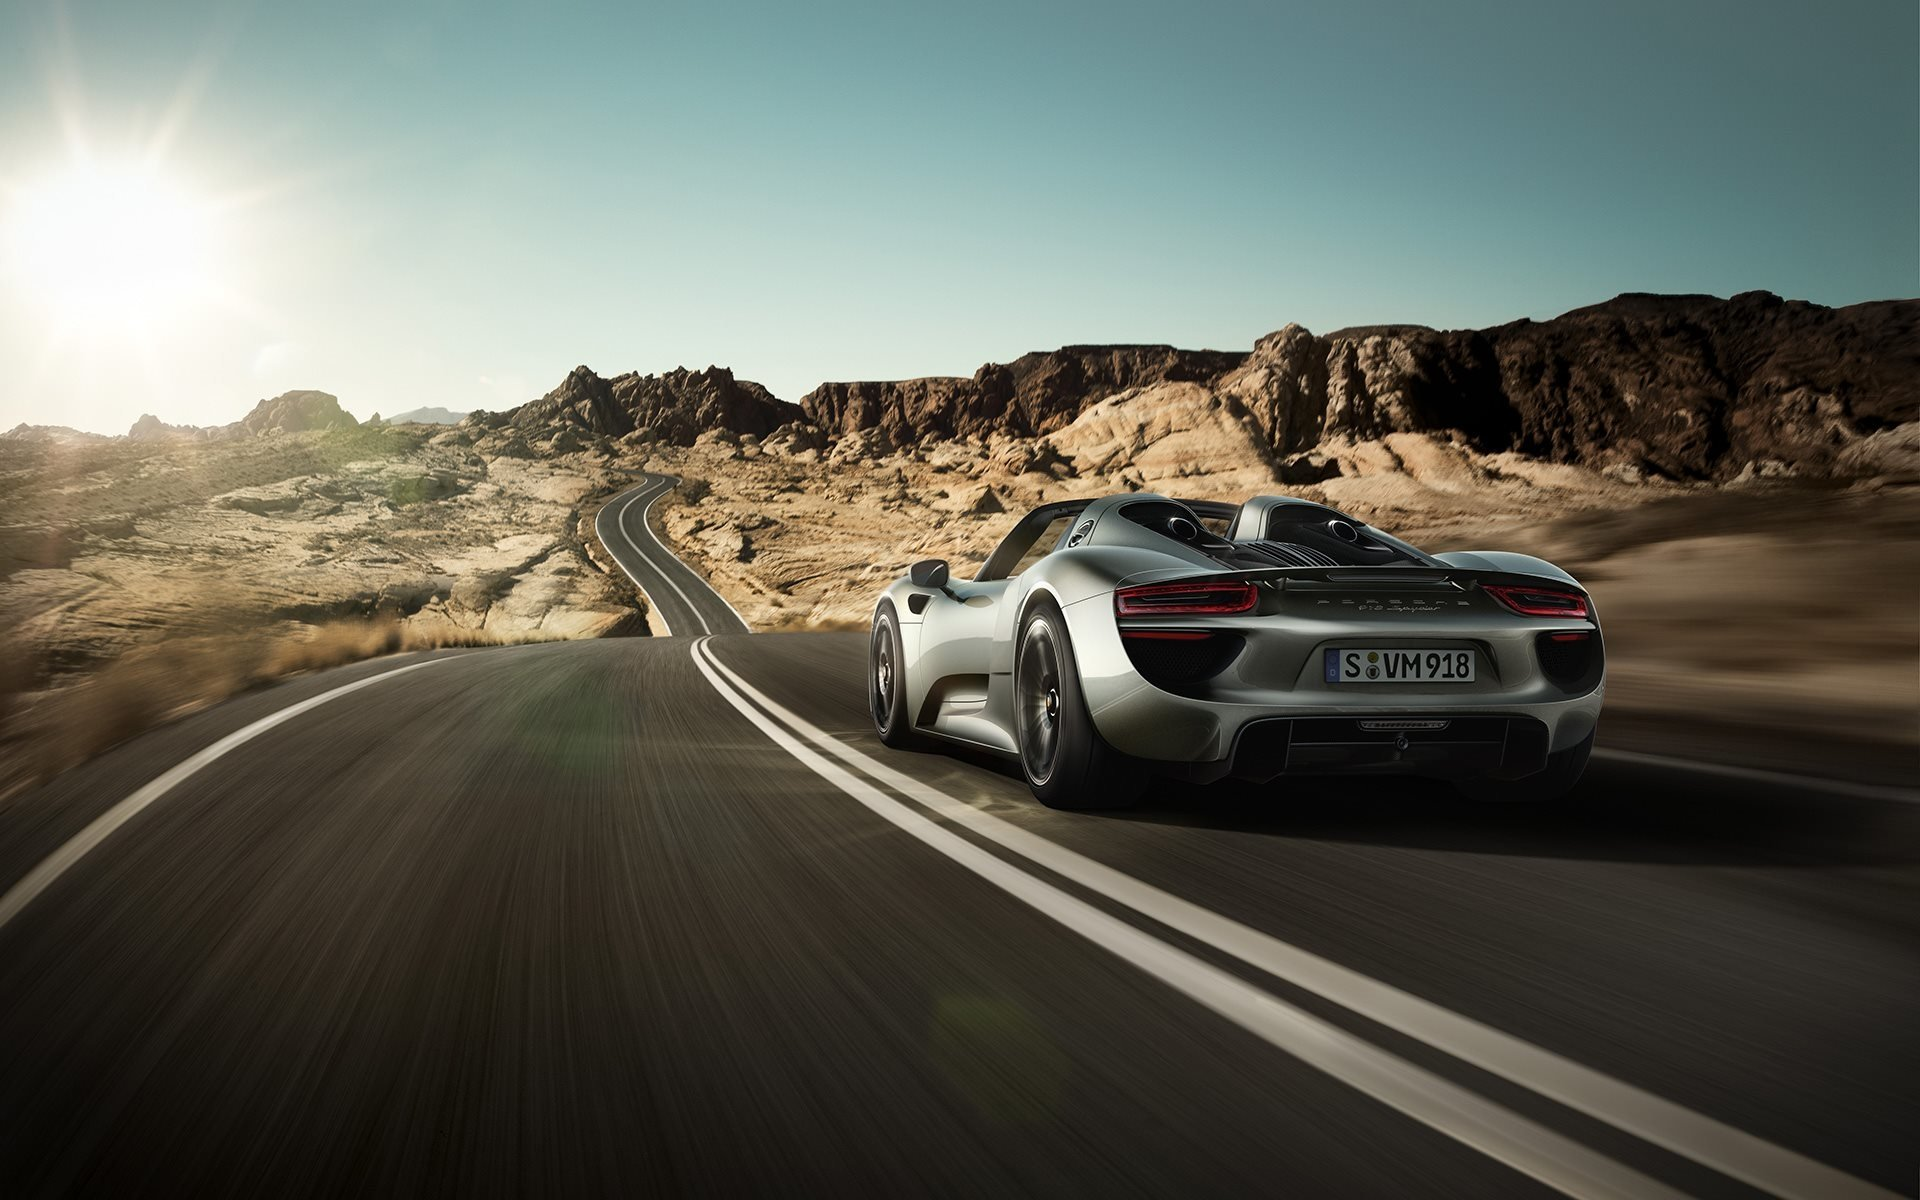 porsche 918 full hd wallpaper and background image | 1920x1200 | id